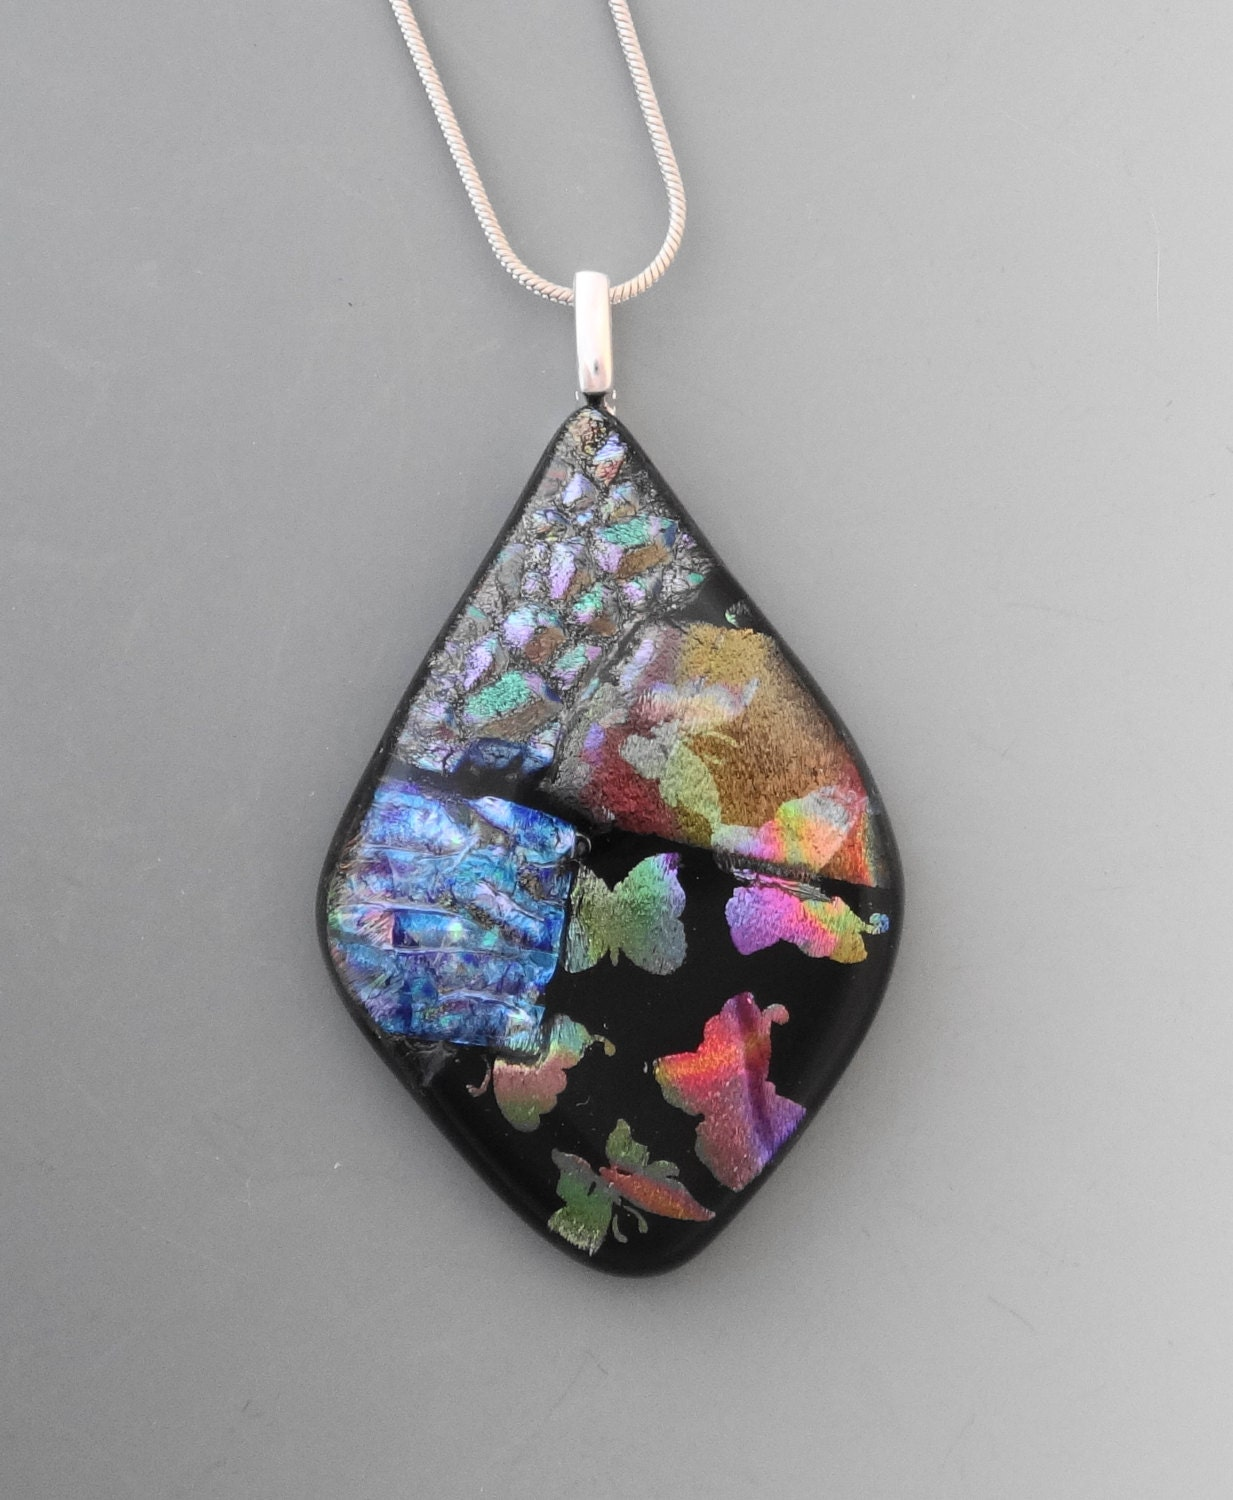 Fused Glass Jewelry Patterns